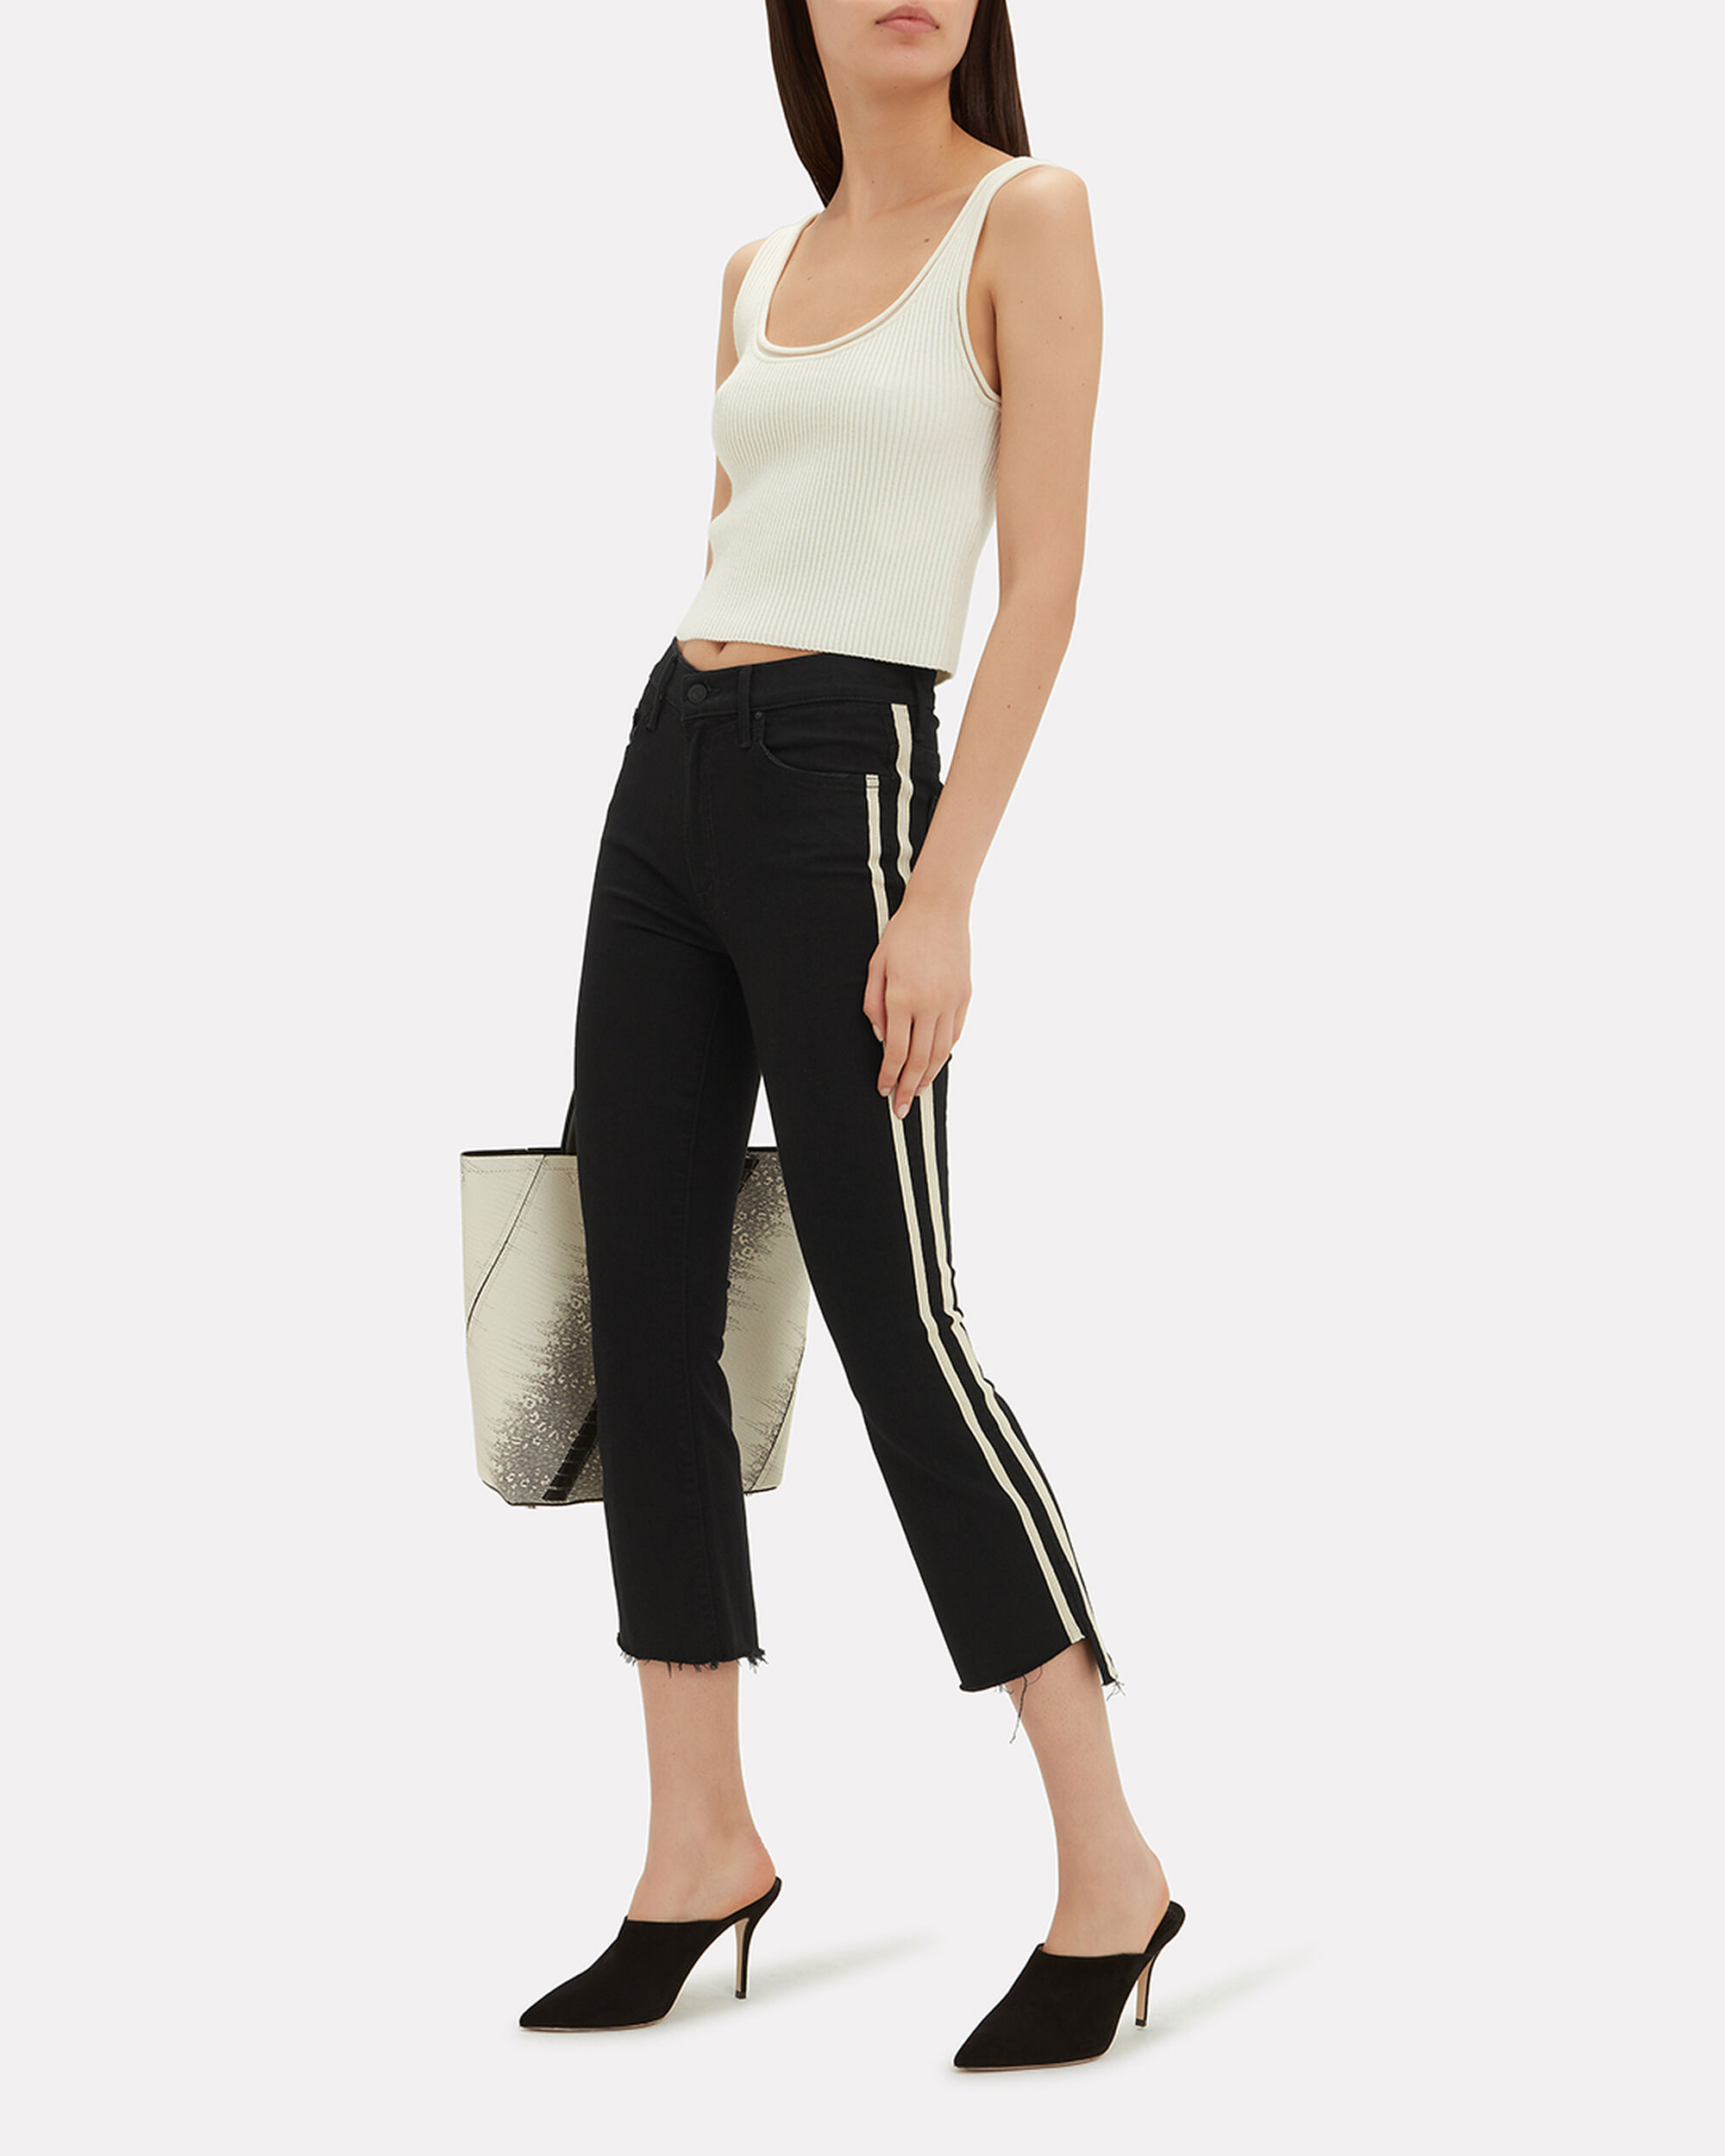 Insider Not Guilty Crop Step Fray Jeans, BLACK, hi-res